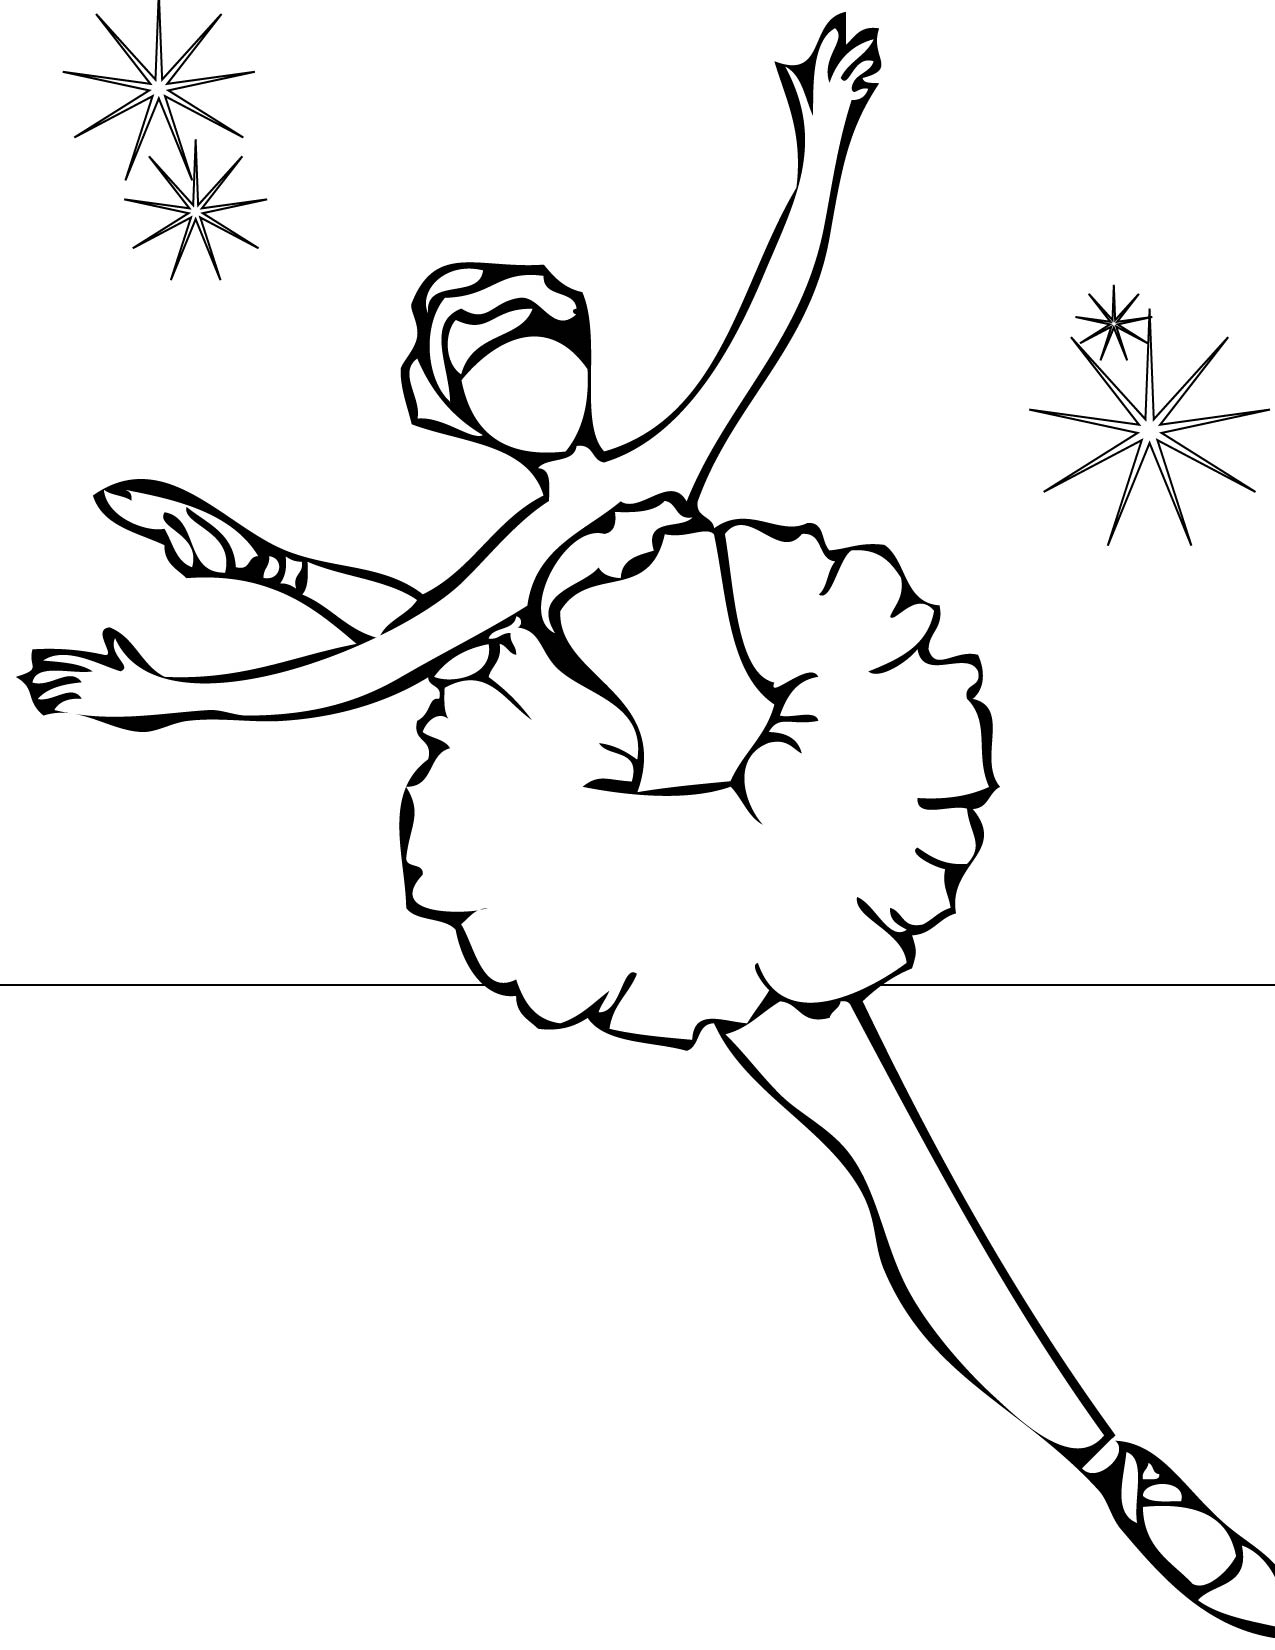 ballroom dancer coloring pages - photo#33